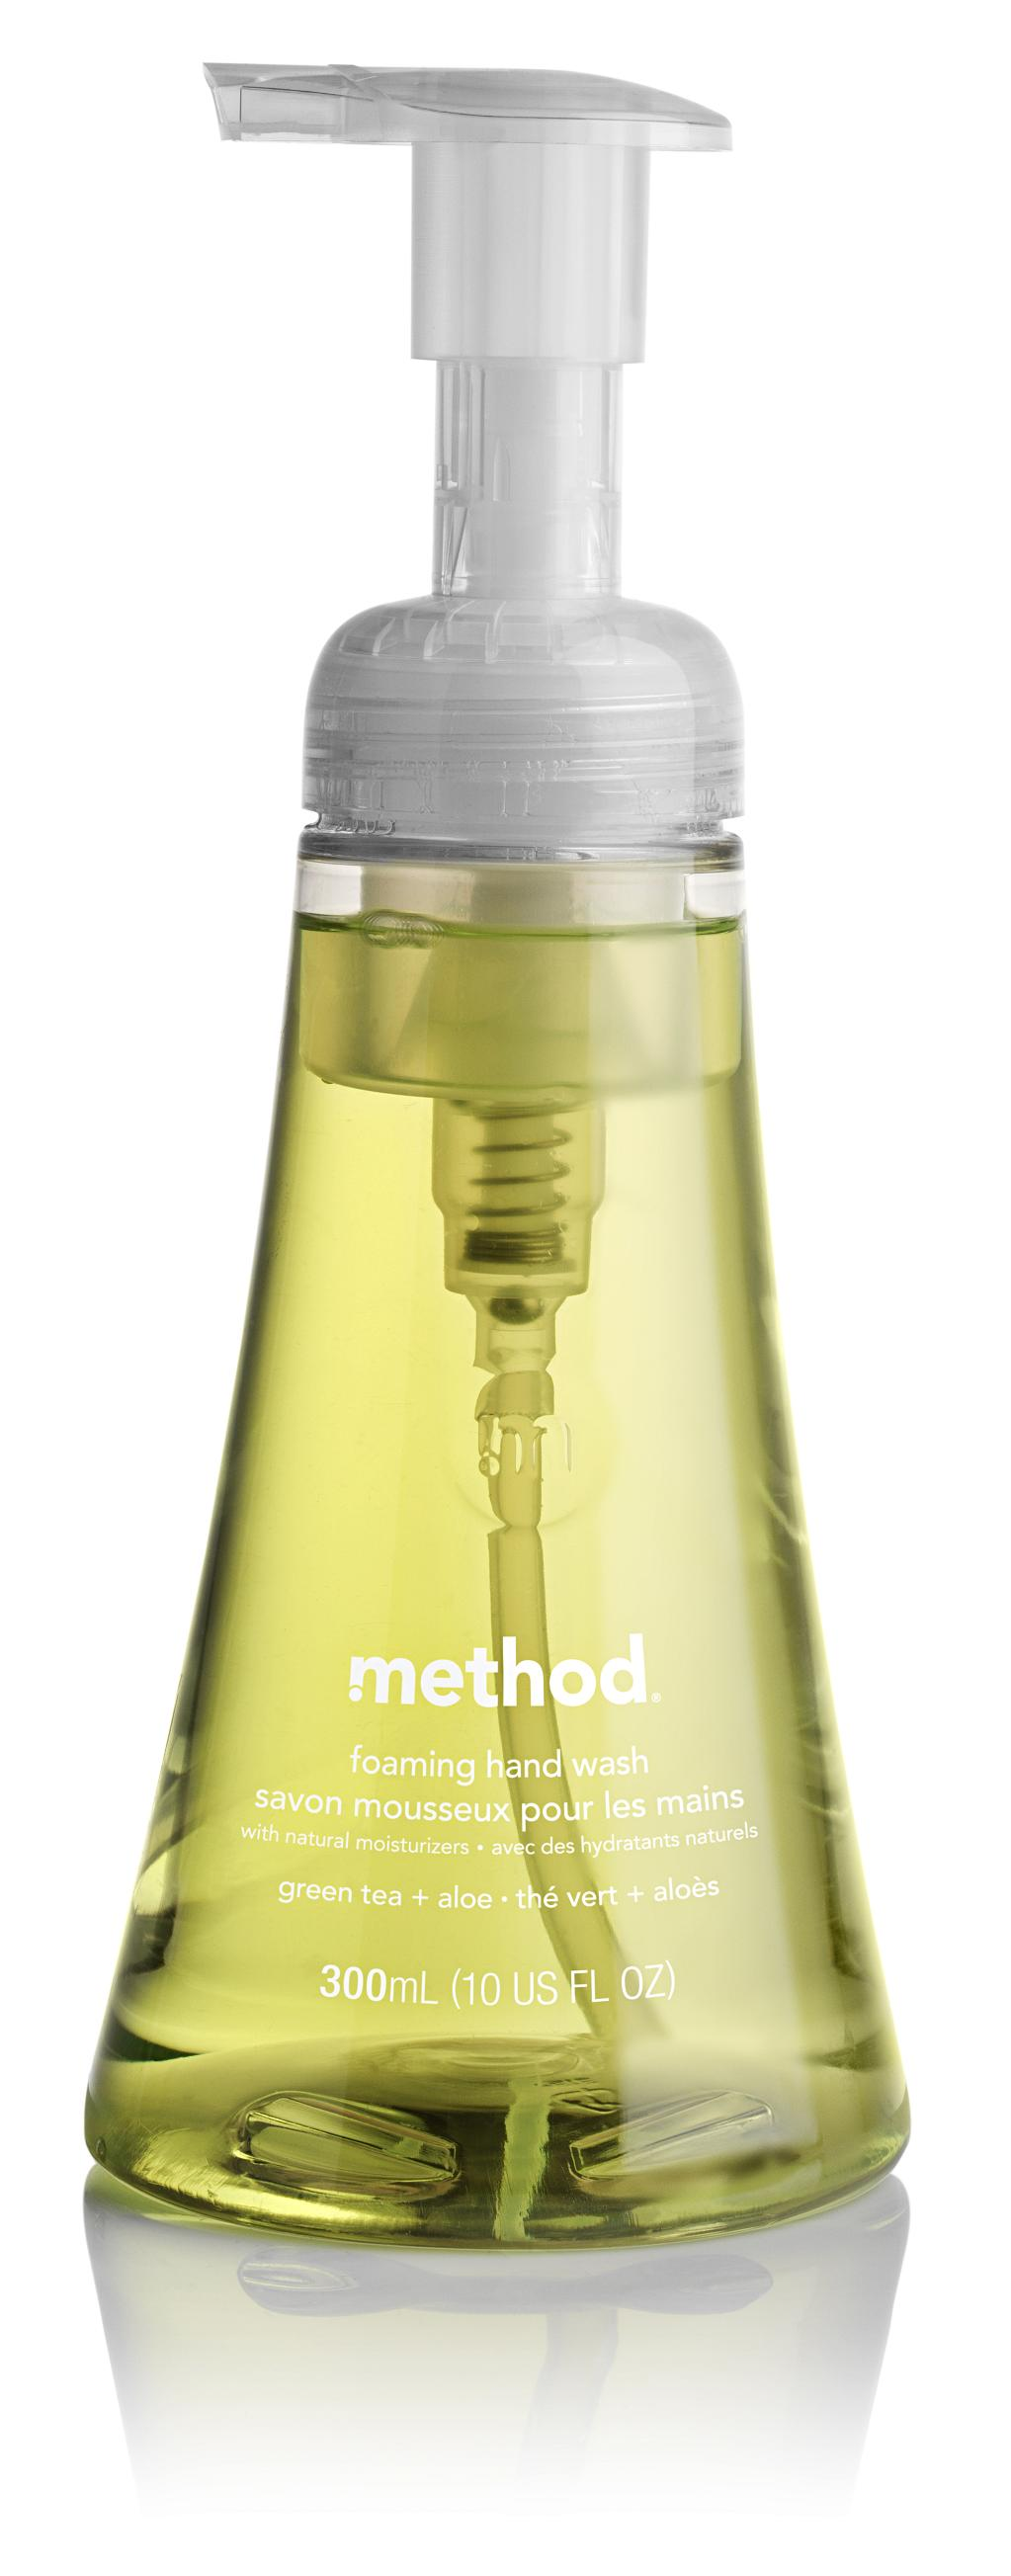 £2.99 www.methodproducts.co.uk